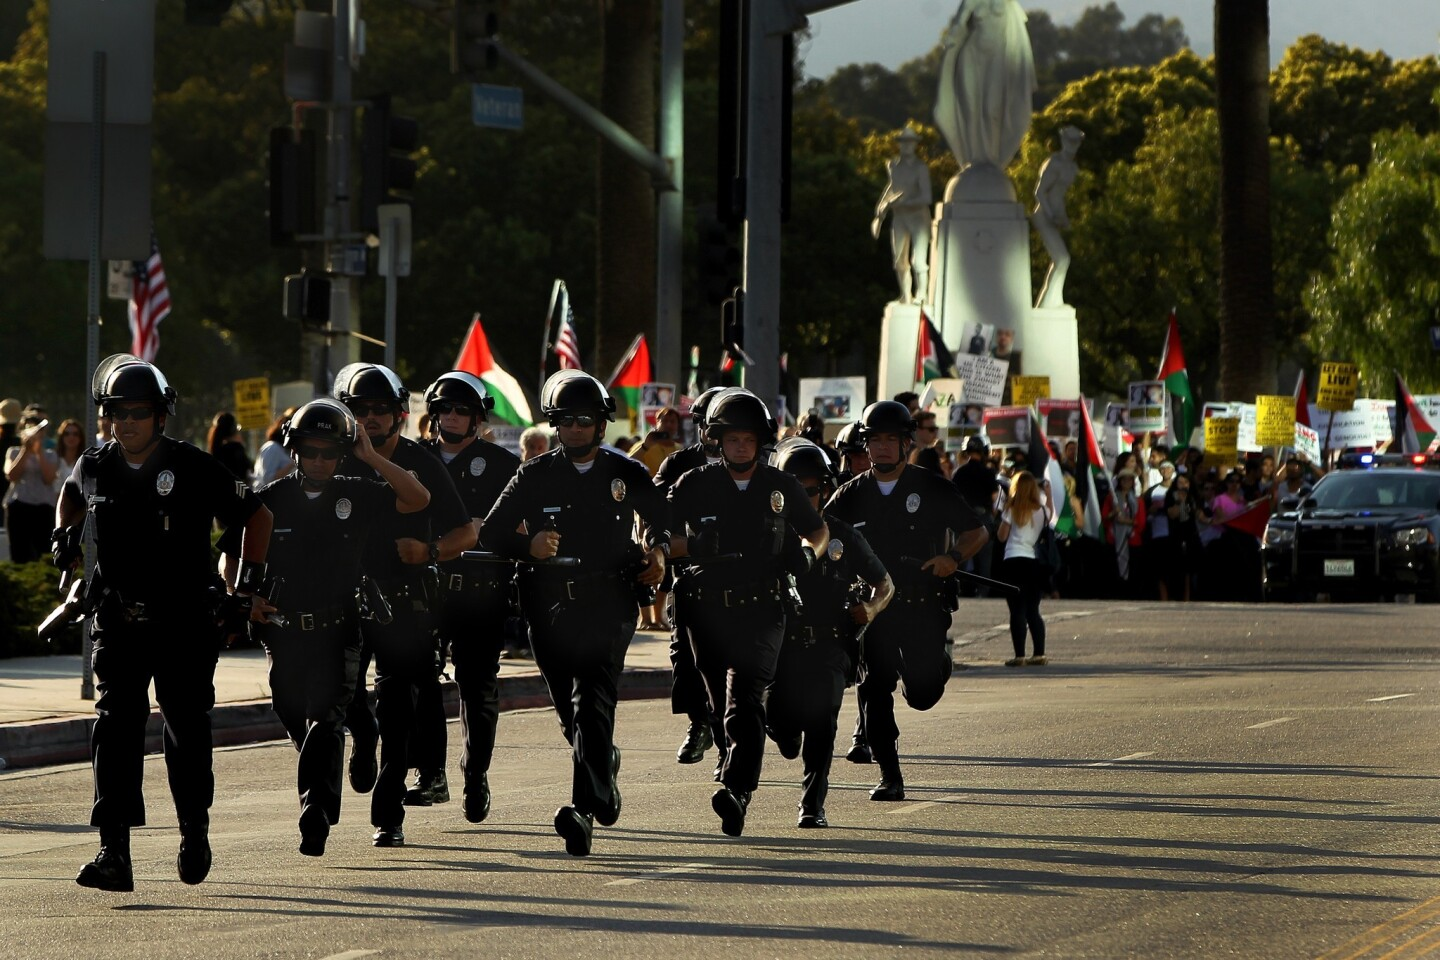 Police in riot gear respond to clashes at a pro-Israel rally at the federal building in Westwood on Sunday.